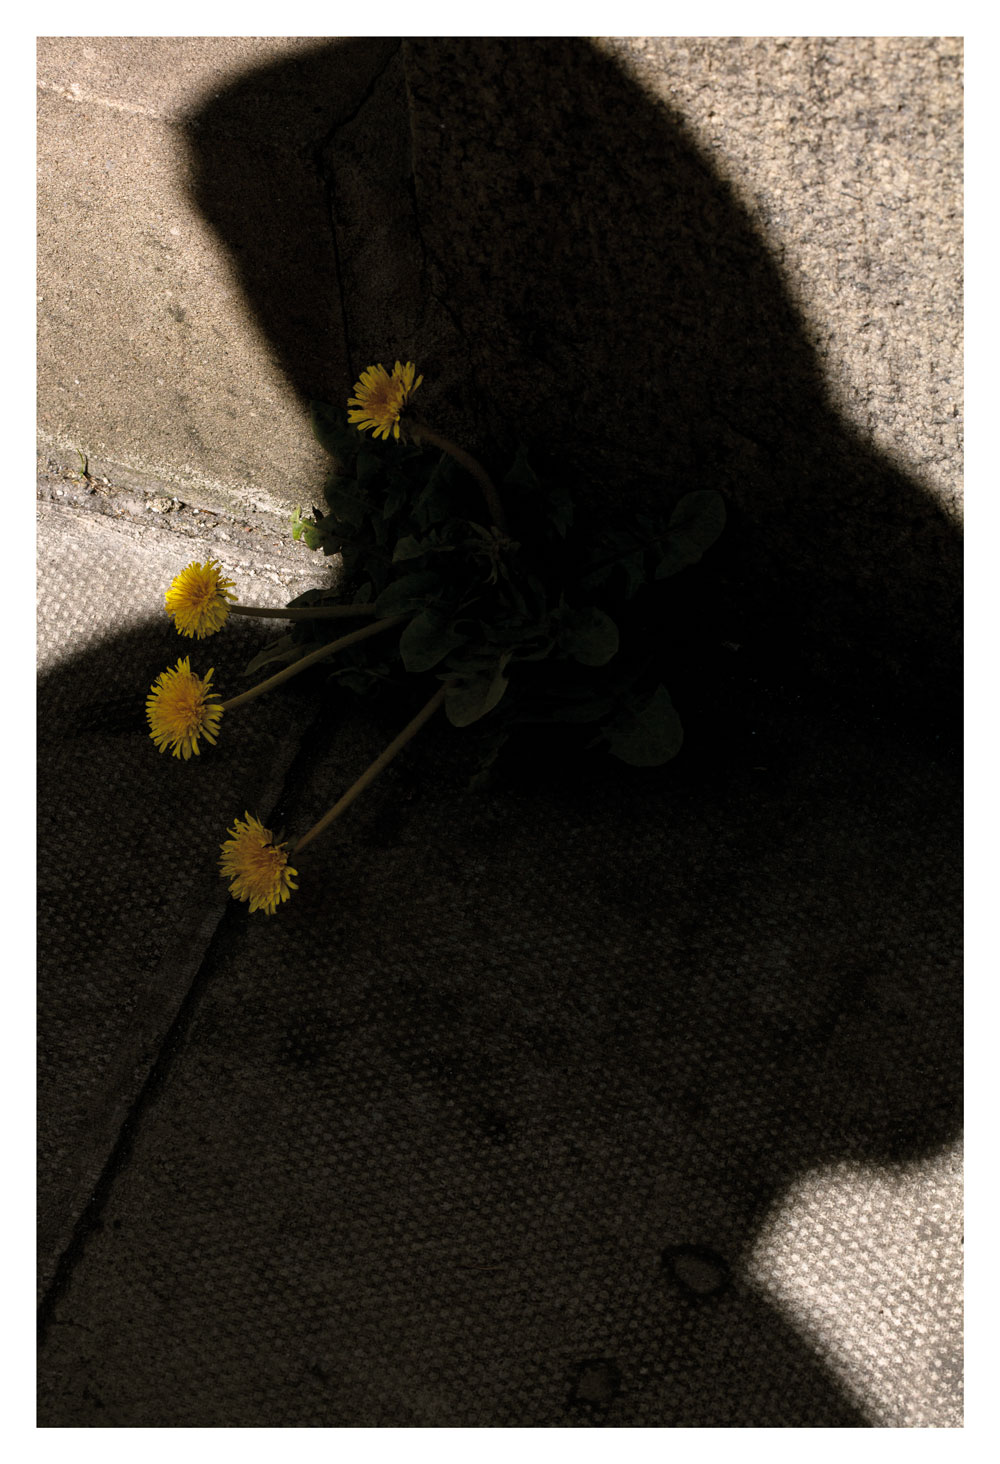 Melissa Spiccia   SEE FLOWERS IN HELL YOUR SHADOW MELISSA SPICCIA